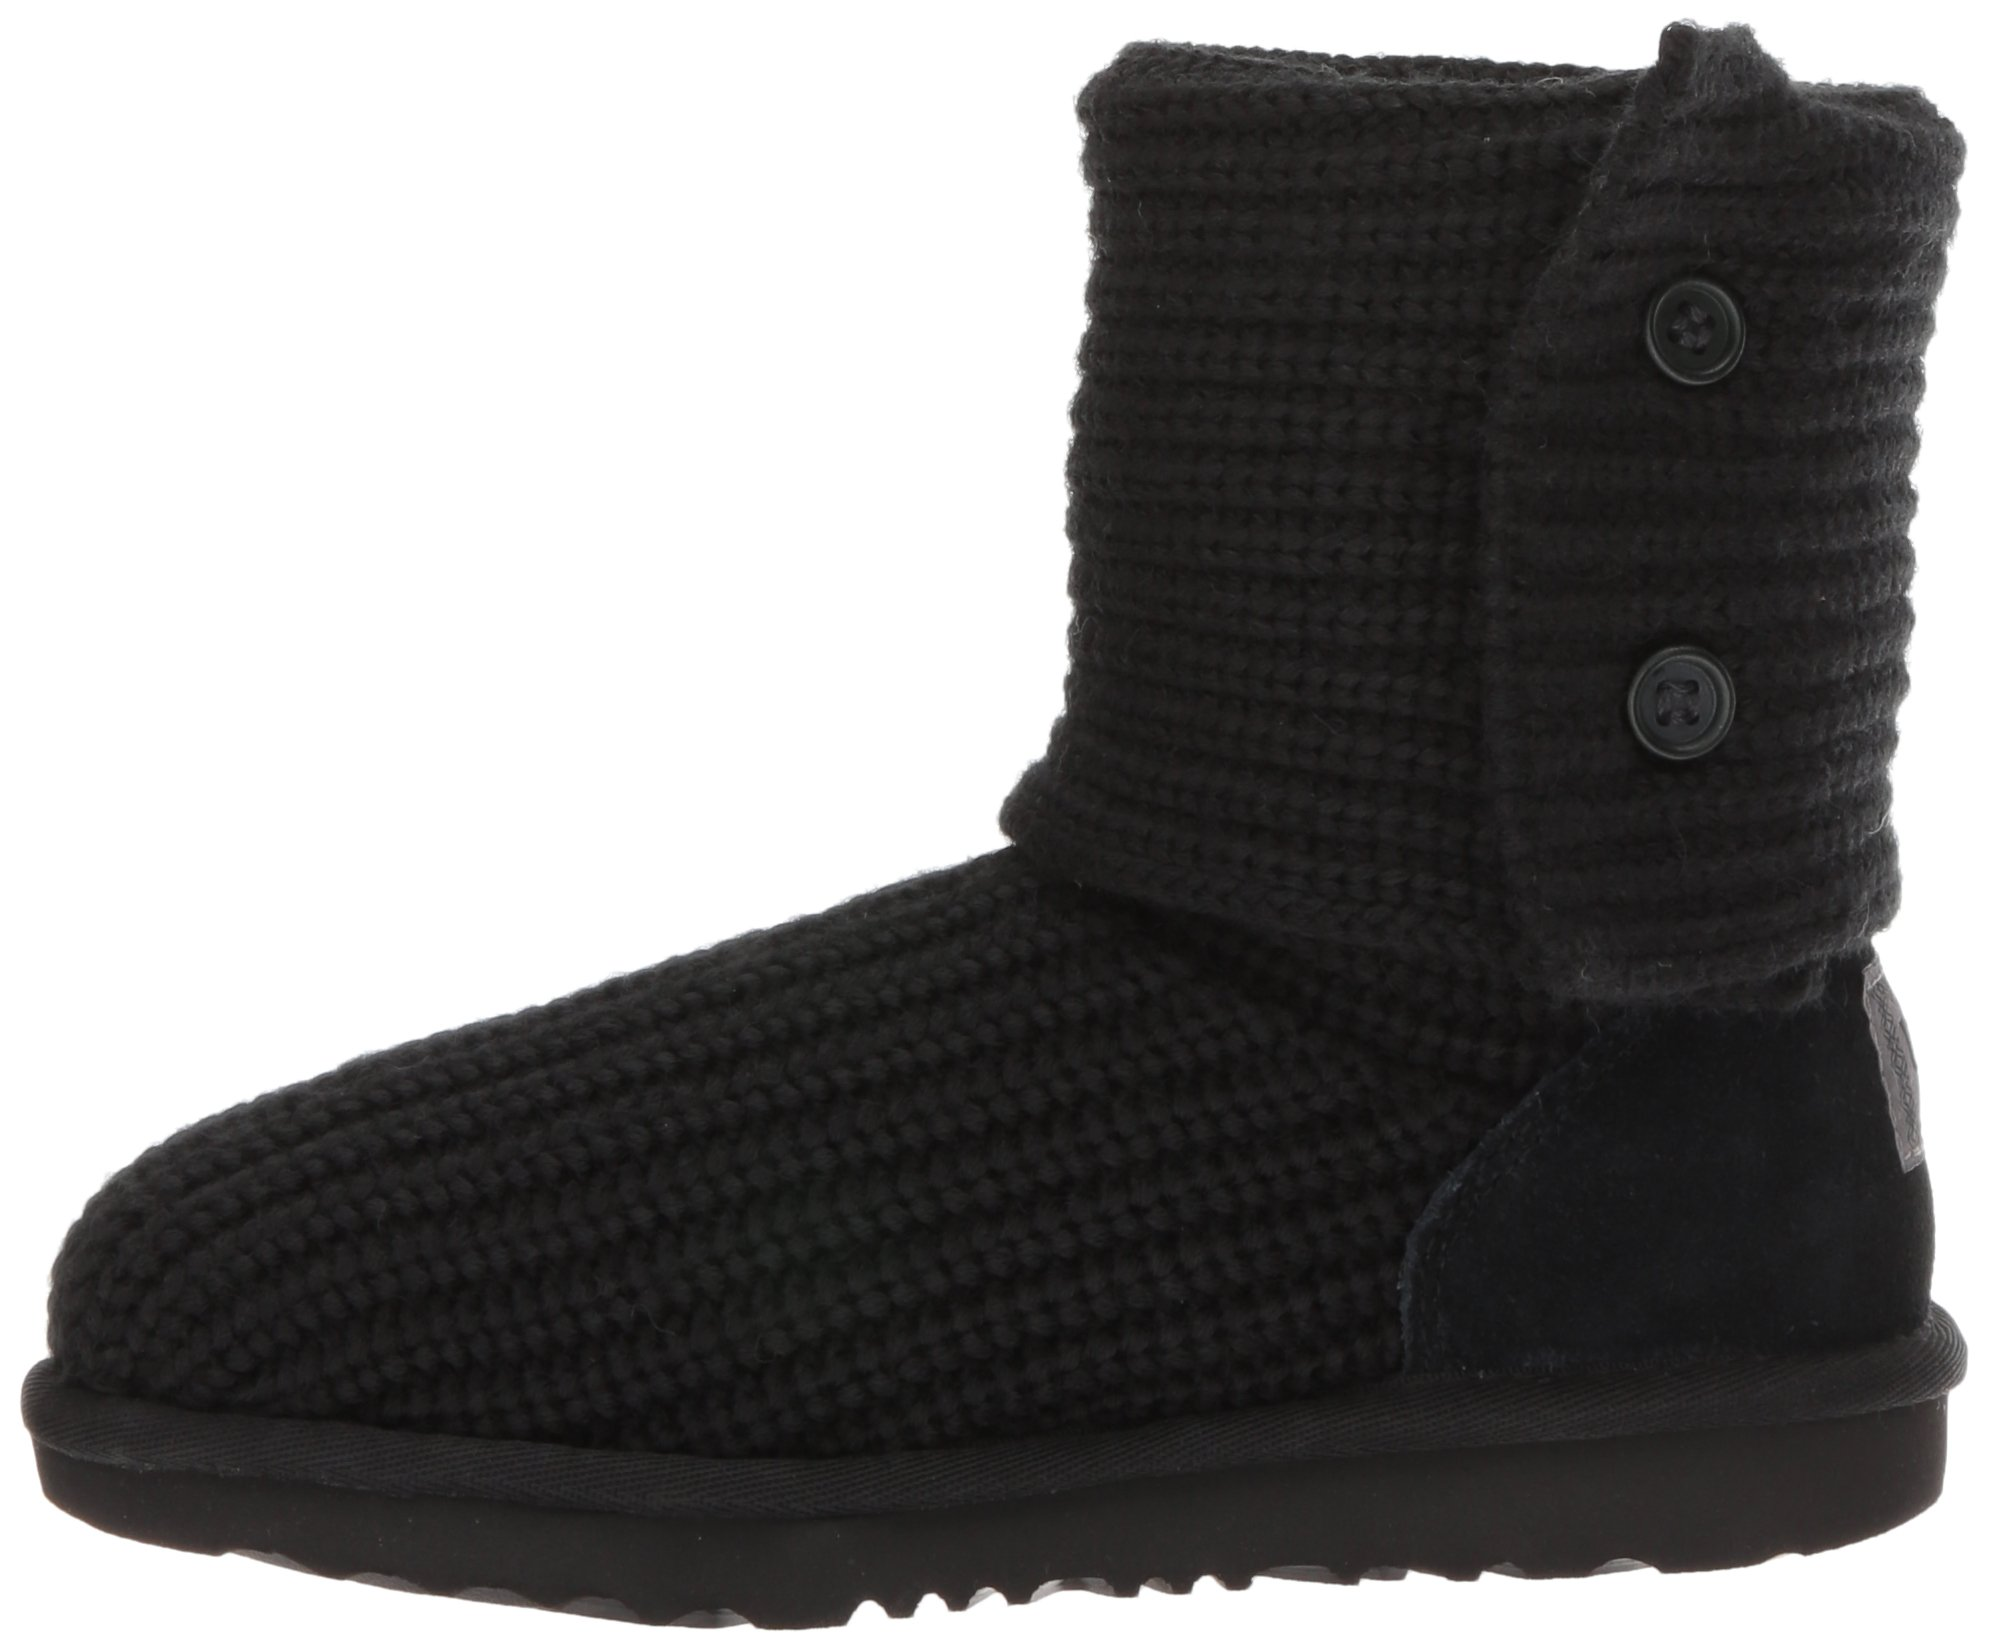 UGG Girls K Cardy II Pull-On Boot, Black, 8 M US Toddler by UGG (Image #5)